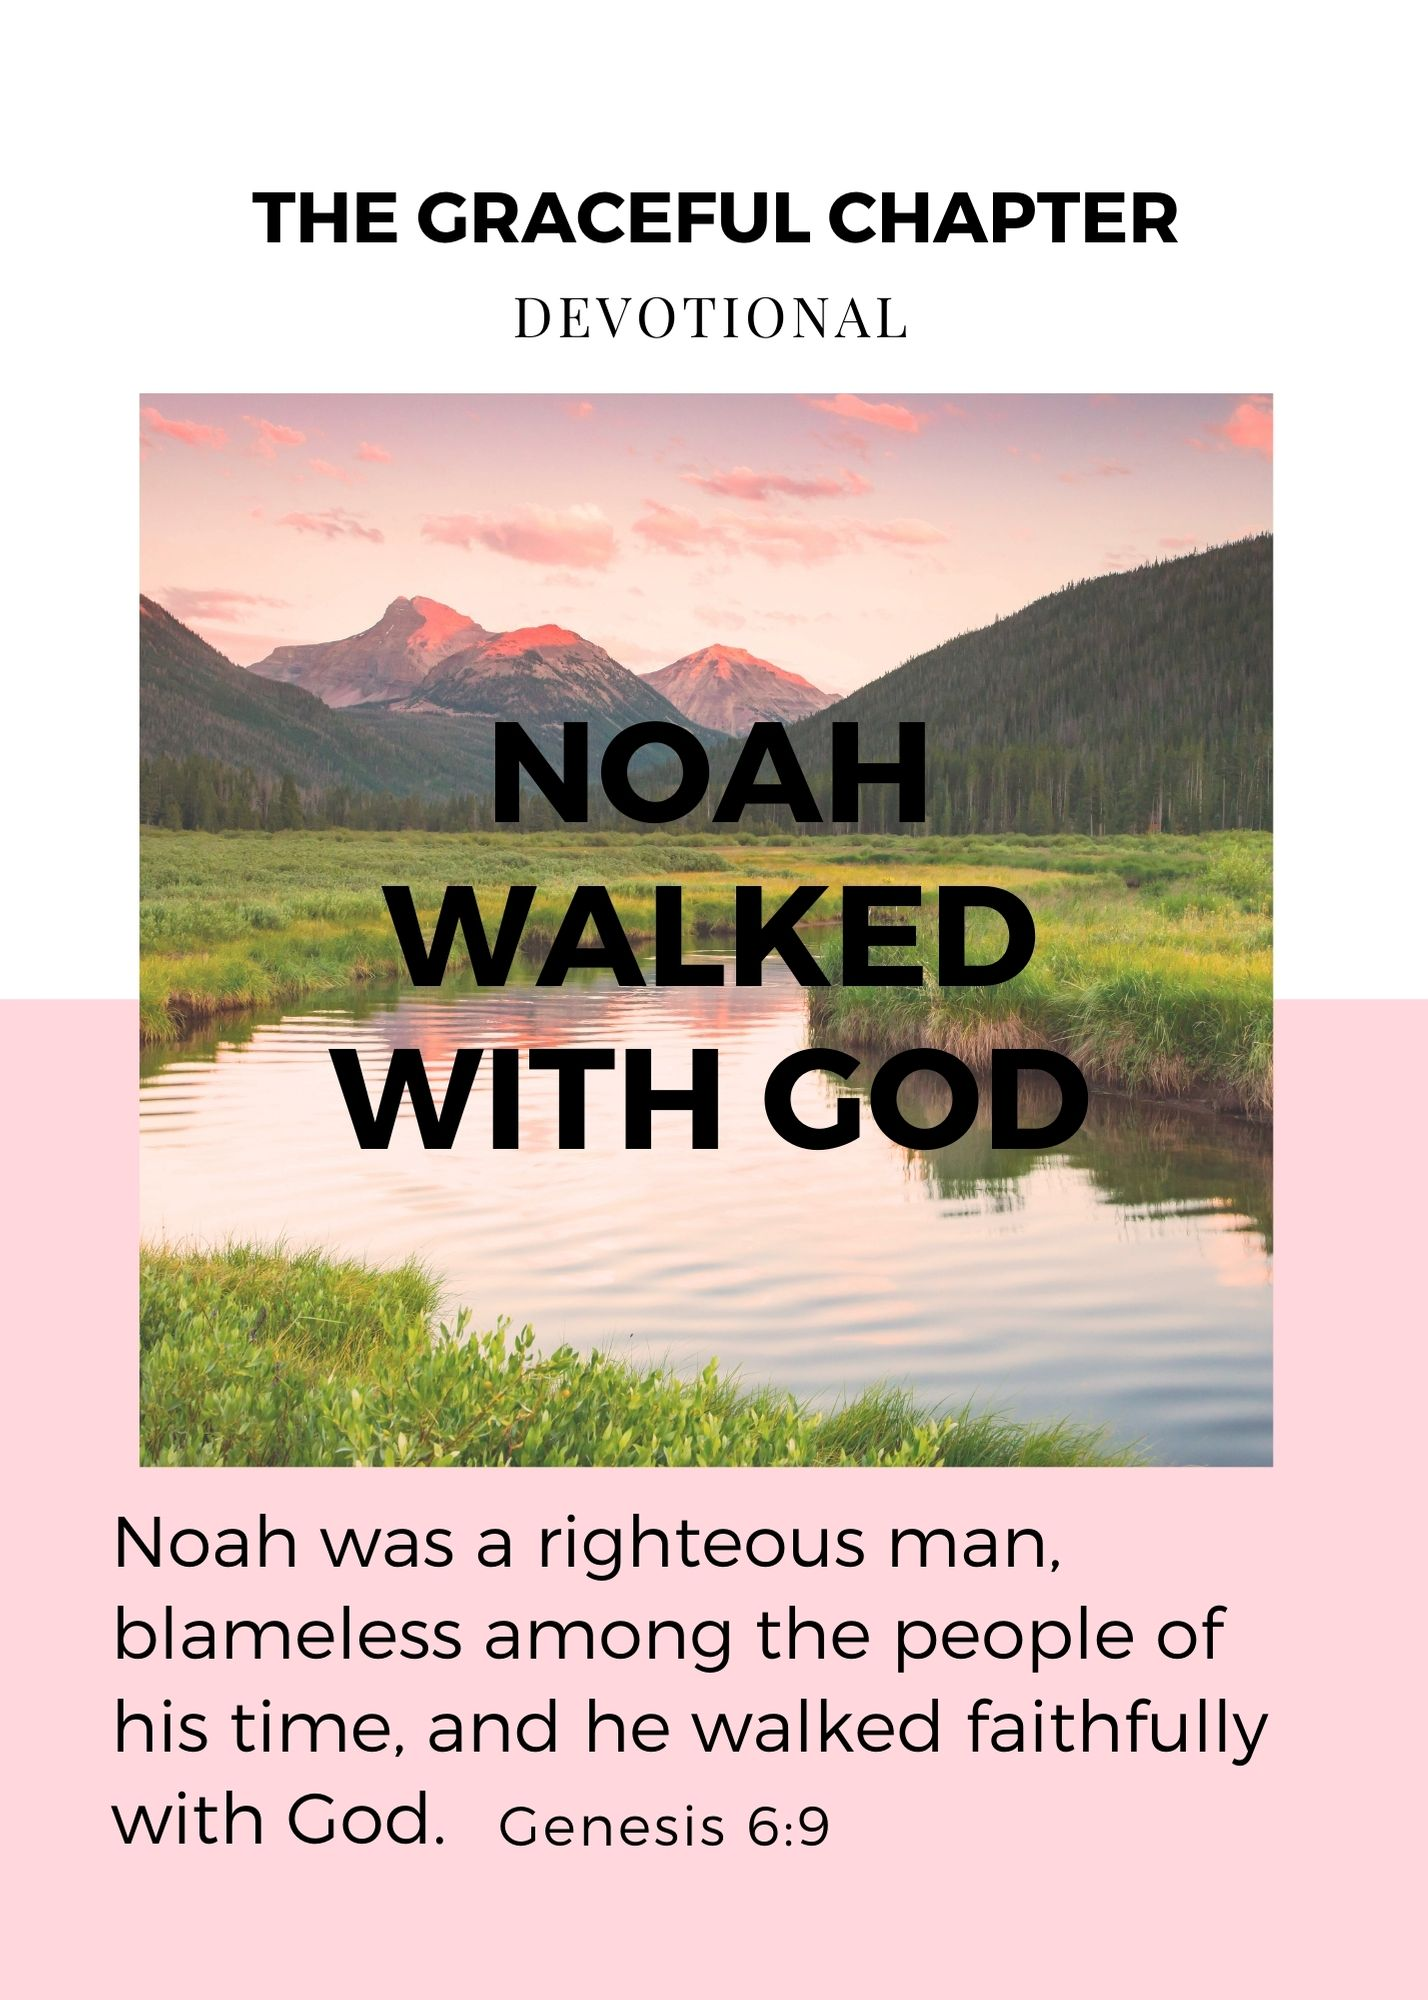 This is the account of Noah and his family.  Noah was a righteous man, blameless among the people of his time, and he walked faithfully with God. Genesis 6:9